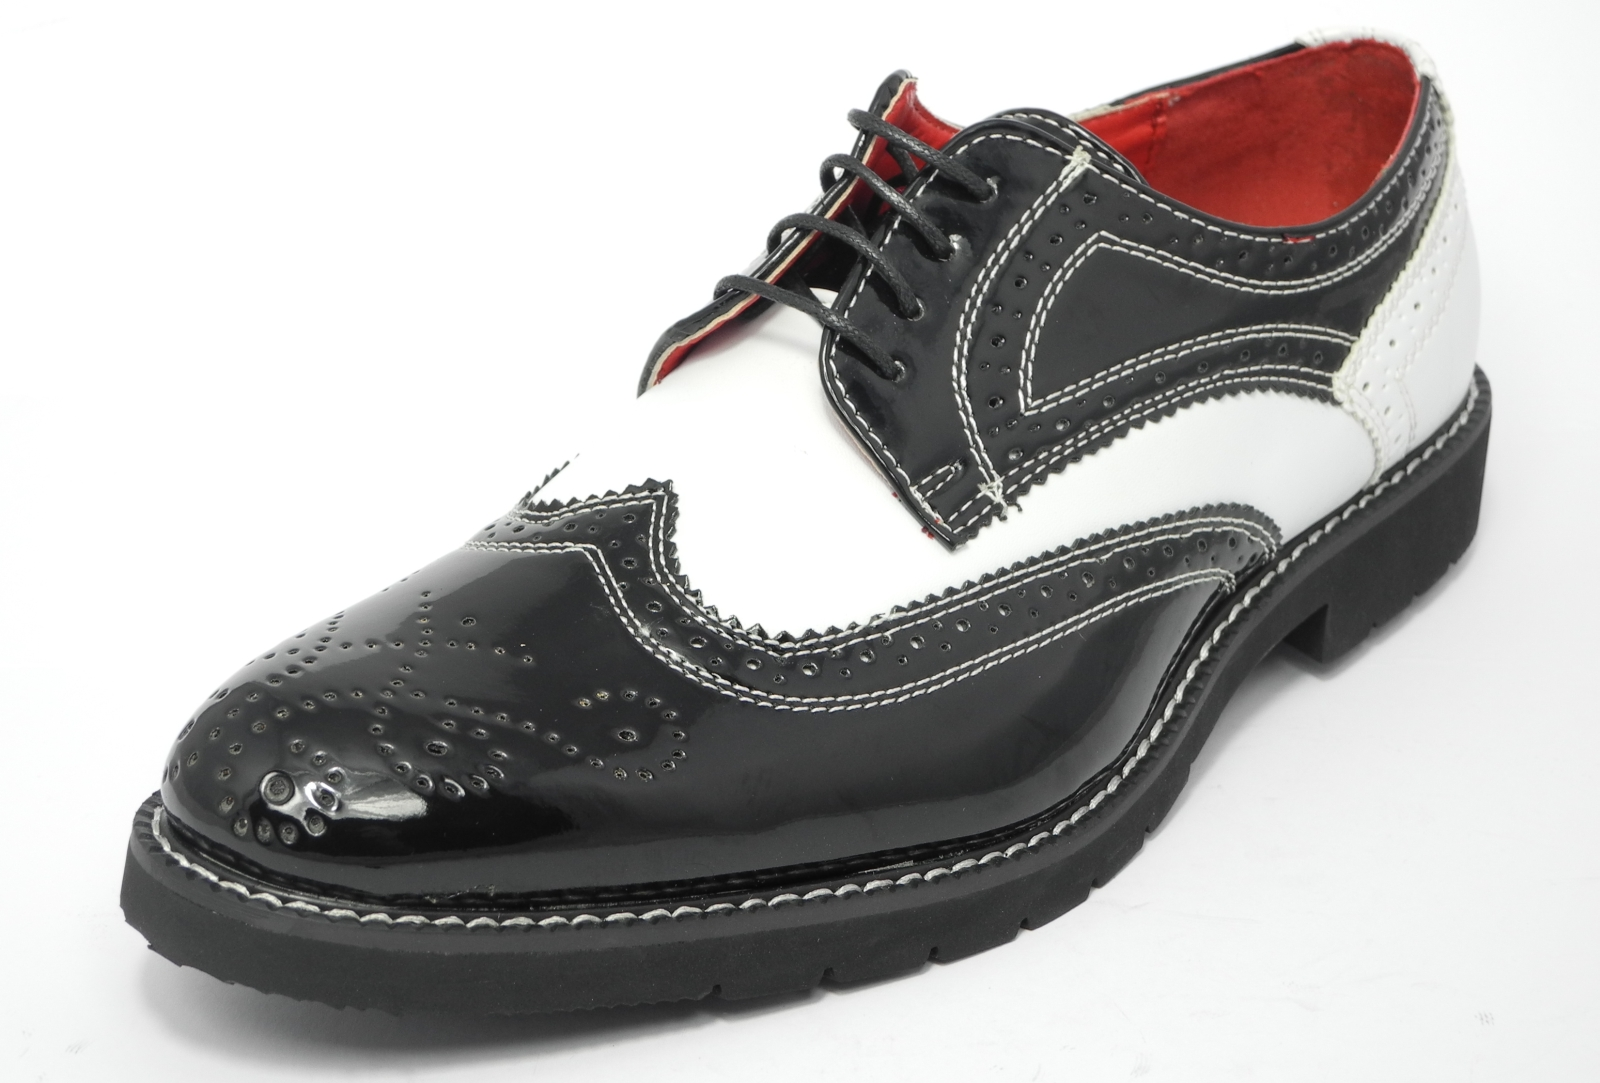 Mens Black And White Patent Leather Shoes